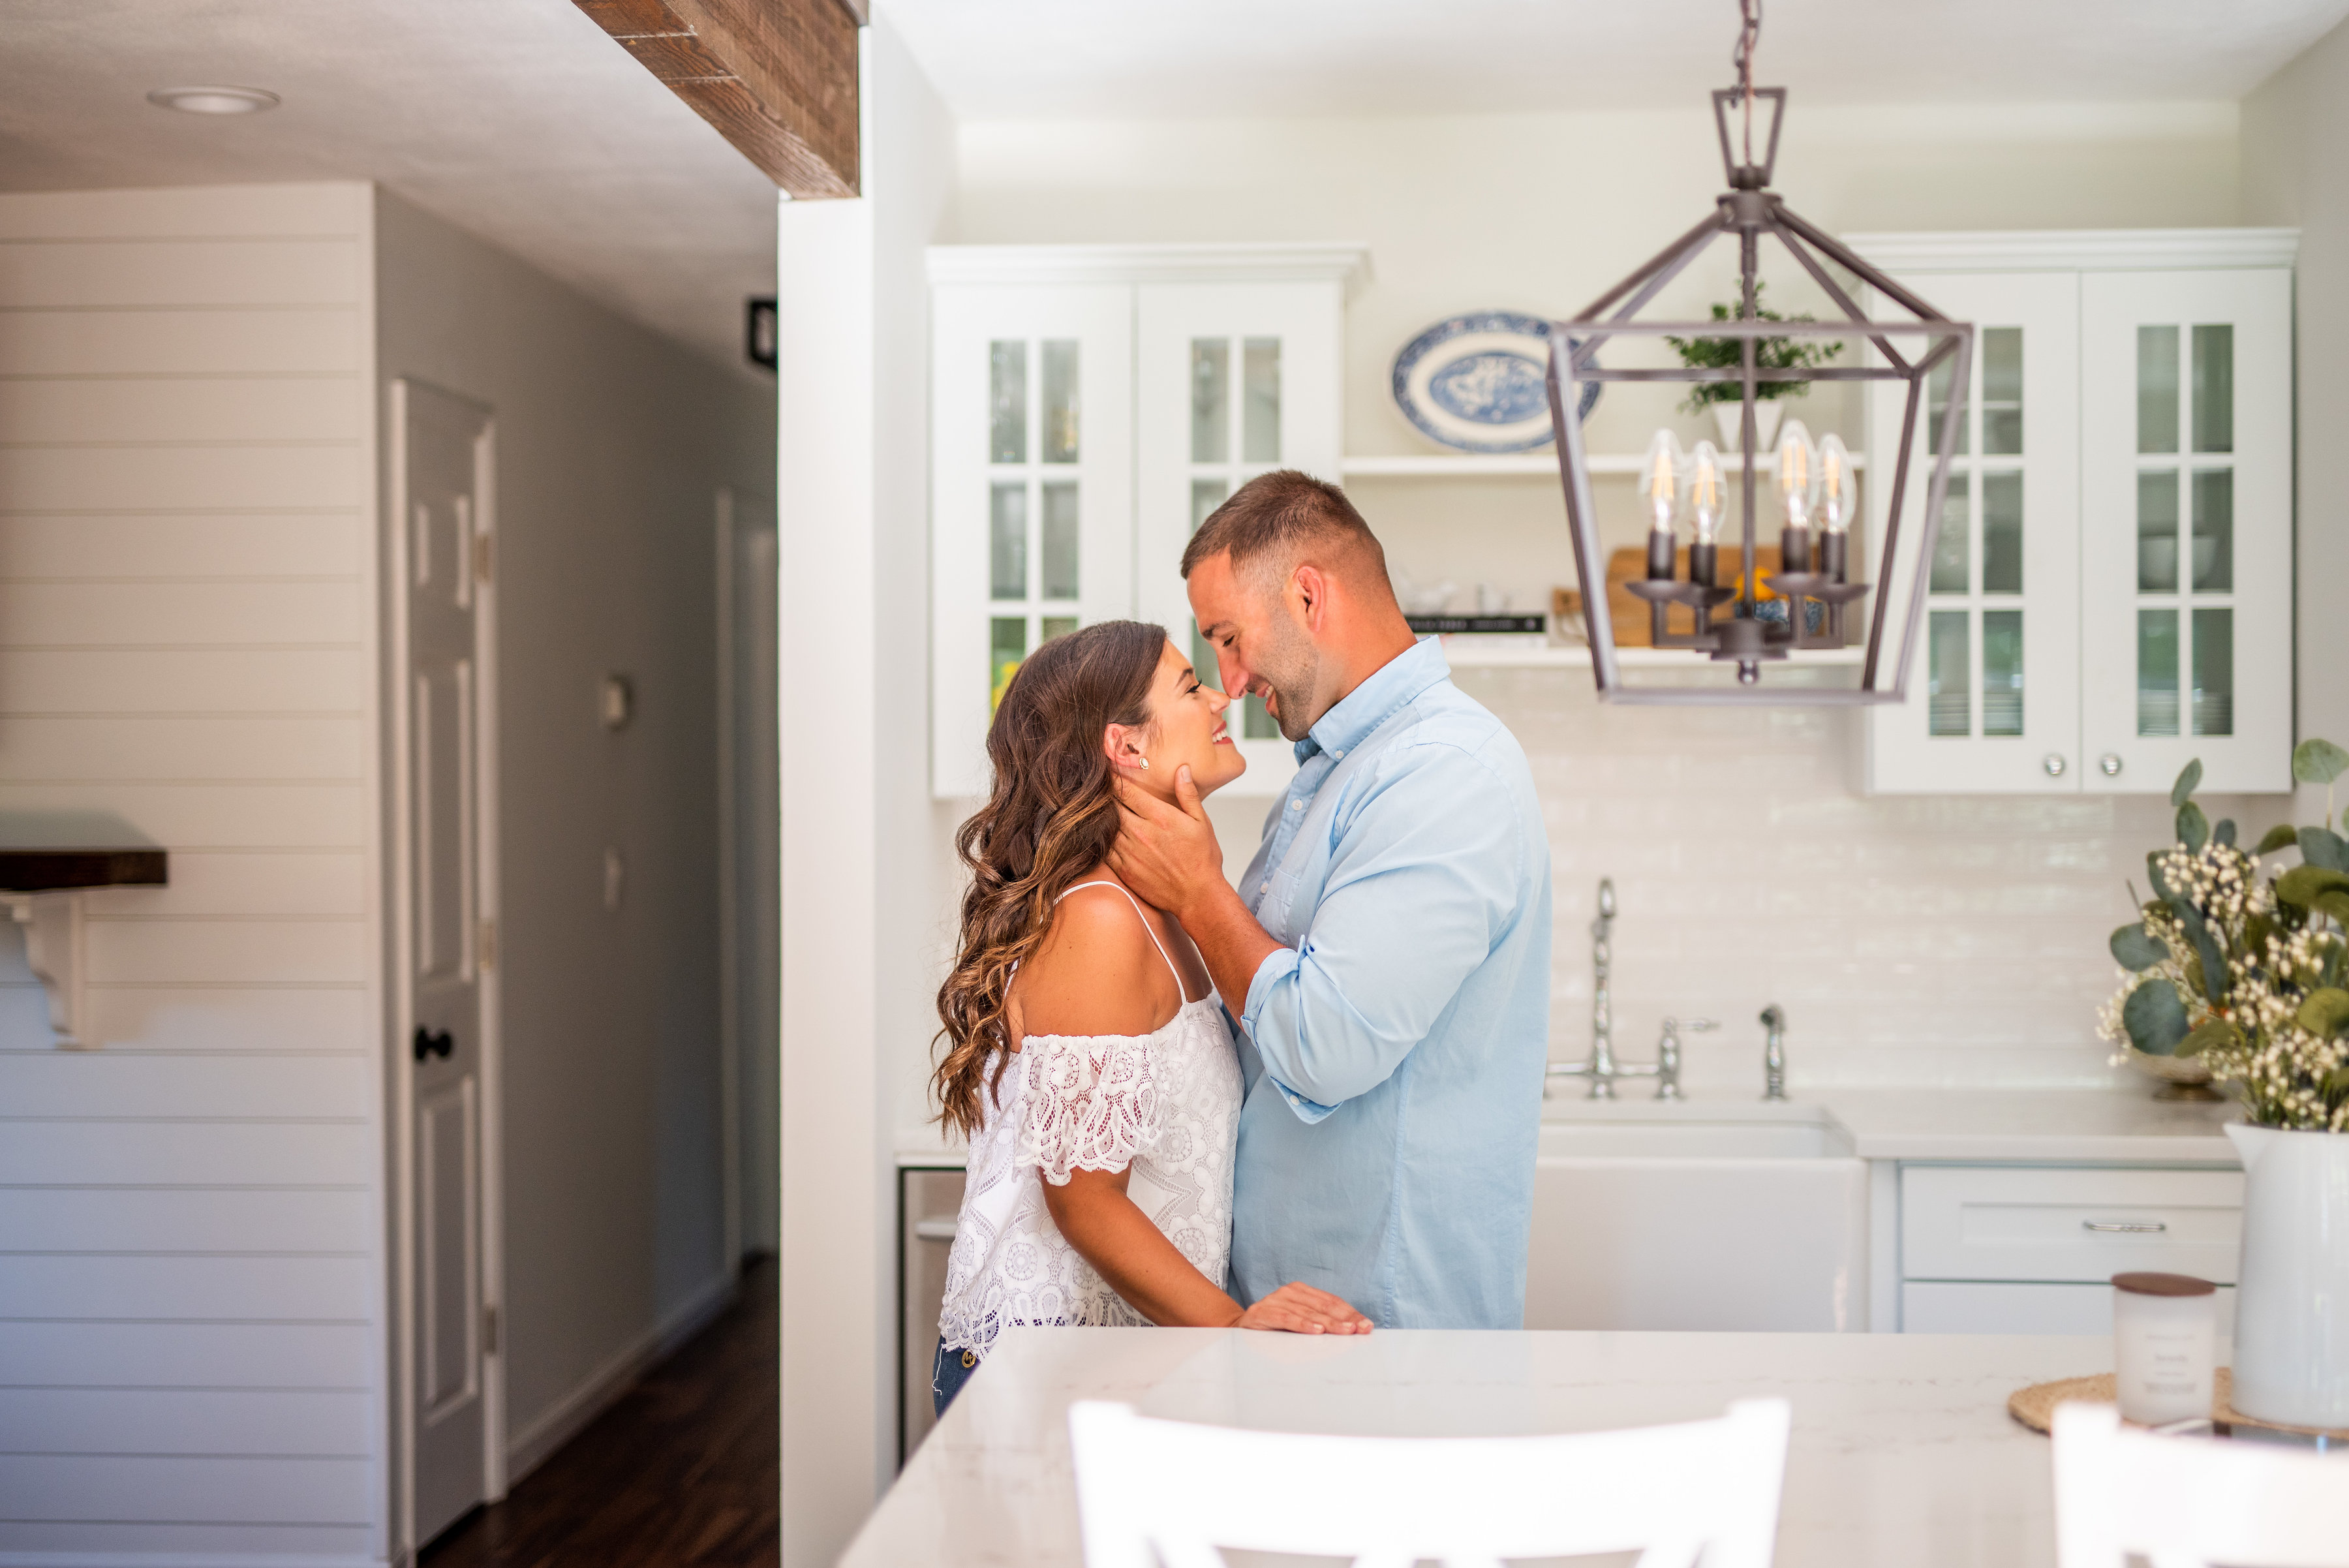 Calverton Engagement Shoot | Engagement Shoot at Home | Rustic Farrm Kitchen Engagement Shoot | North Forrk Wedding Photographer8